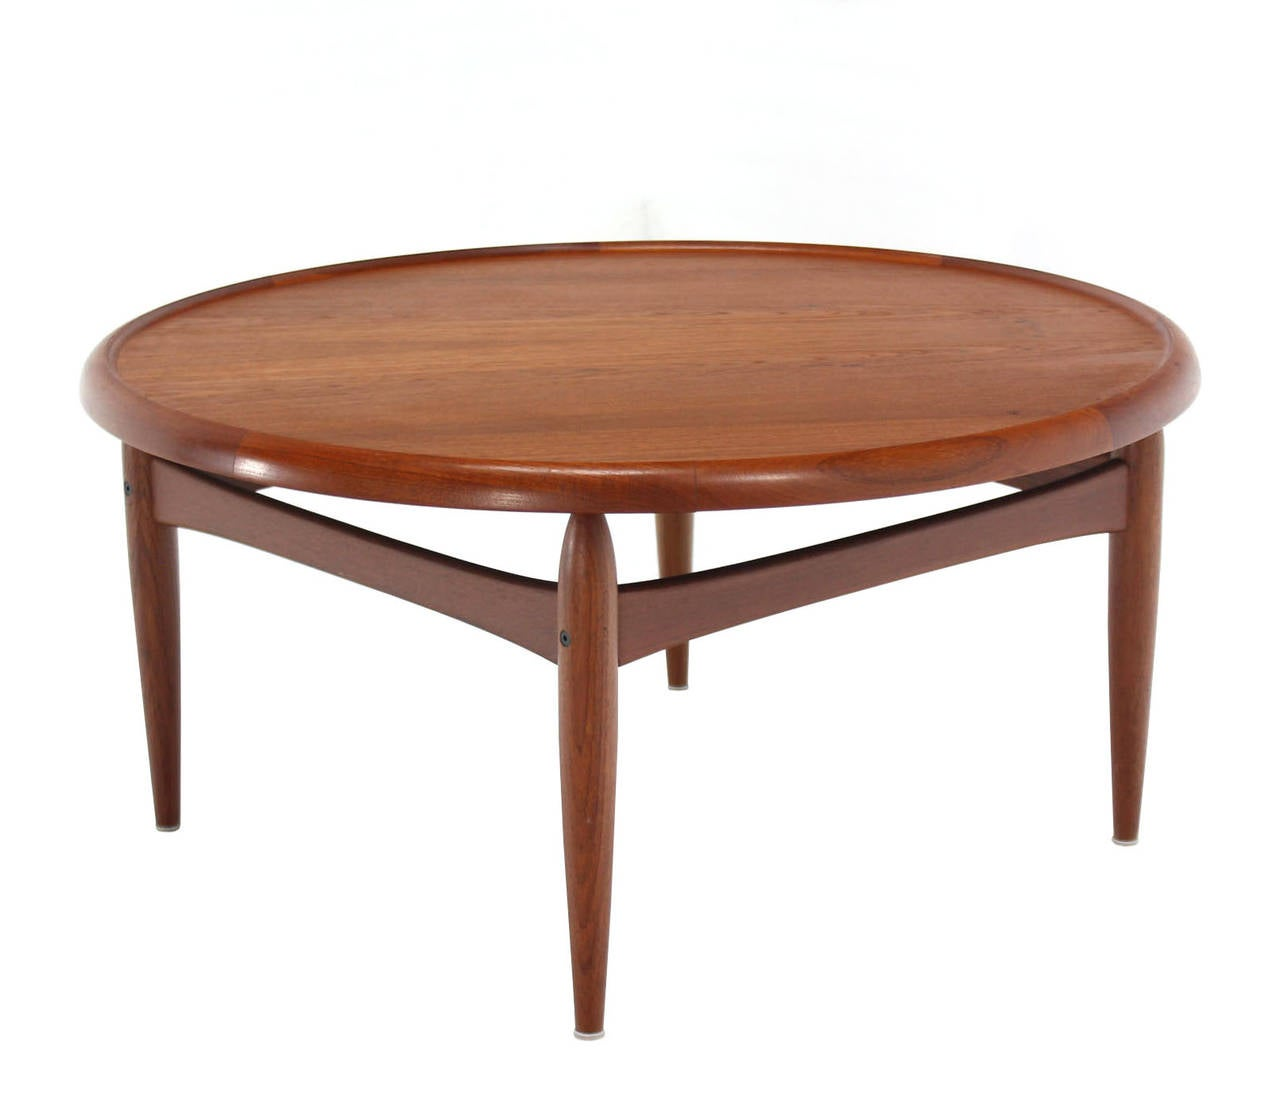 Scandinavian Teak Coffee Table: Reversible Flip-Top Danish Modern Round Teak Coffee Table